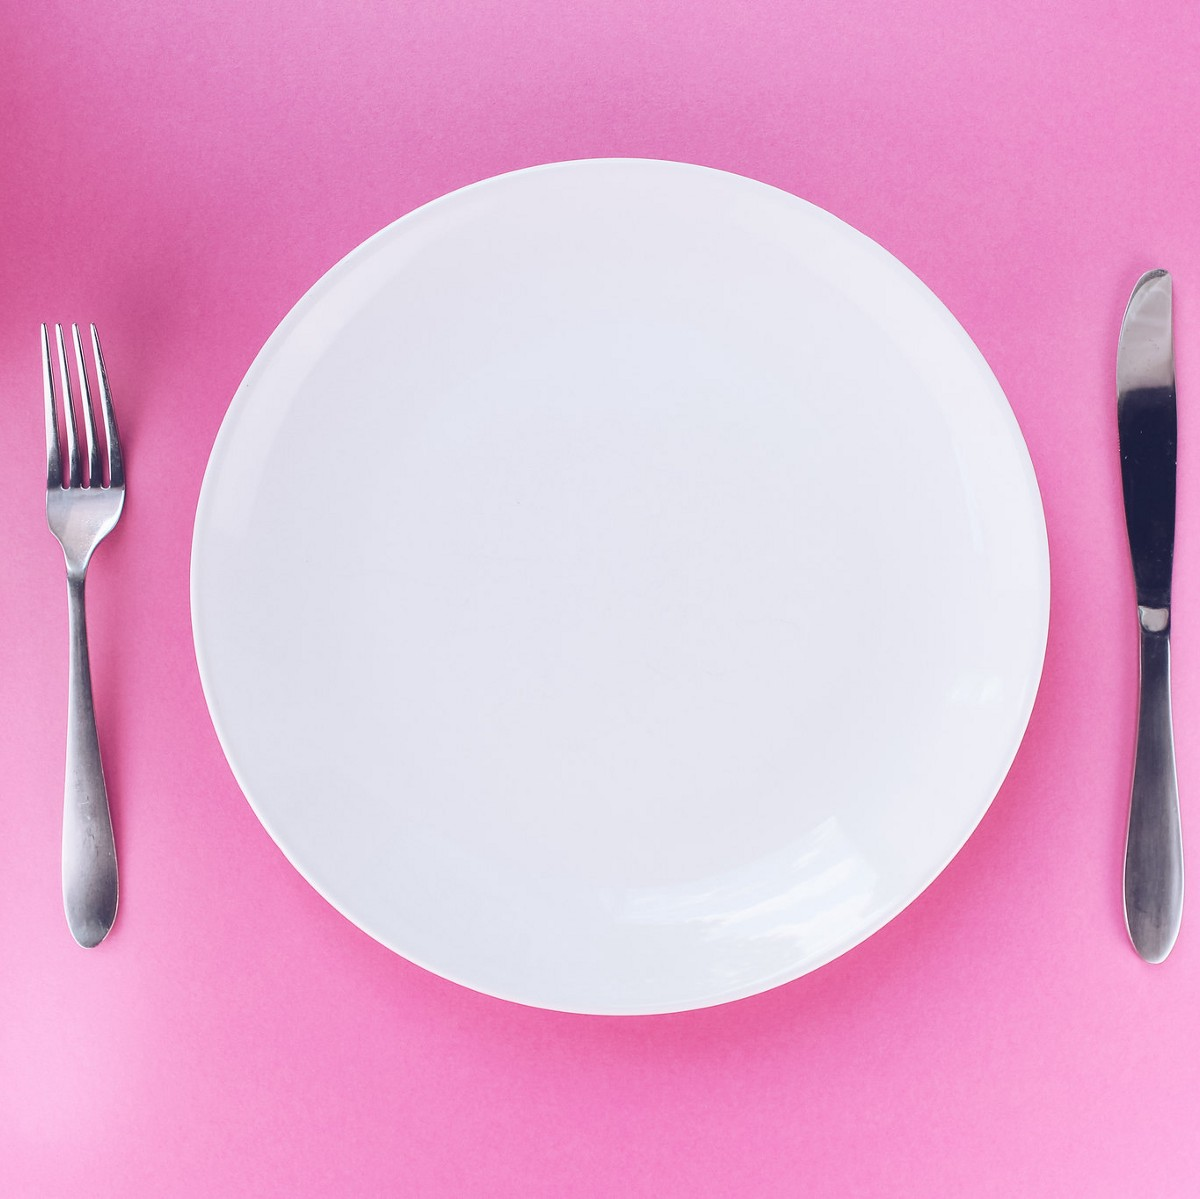 Extreme Fasting is Sweeping Through Silicon Valley